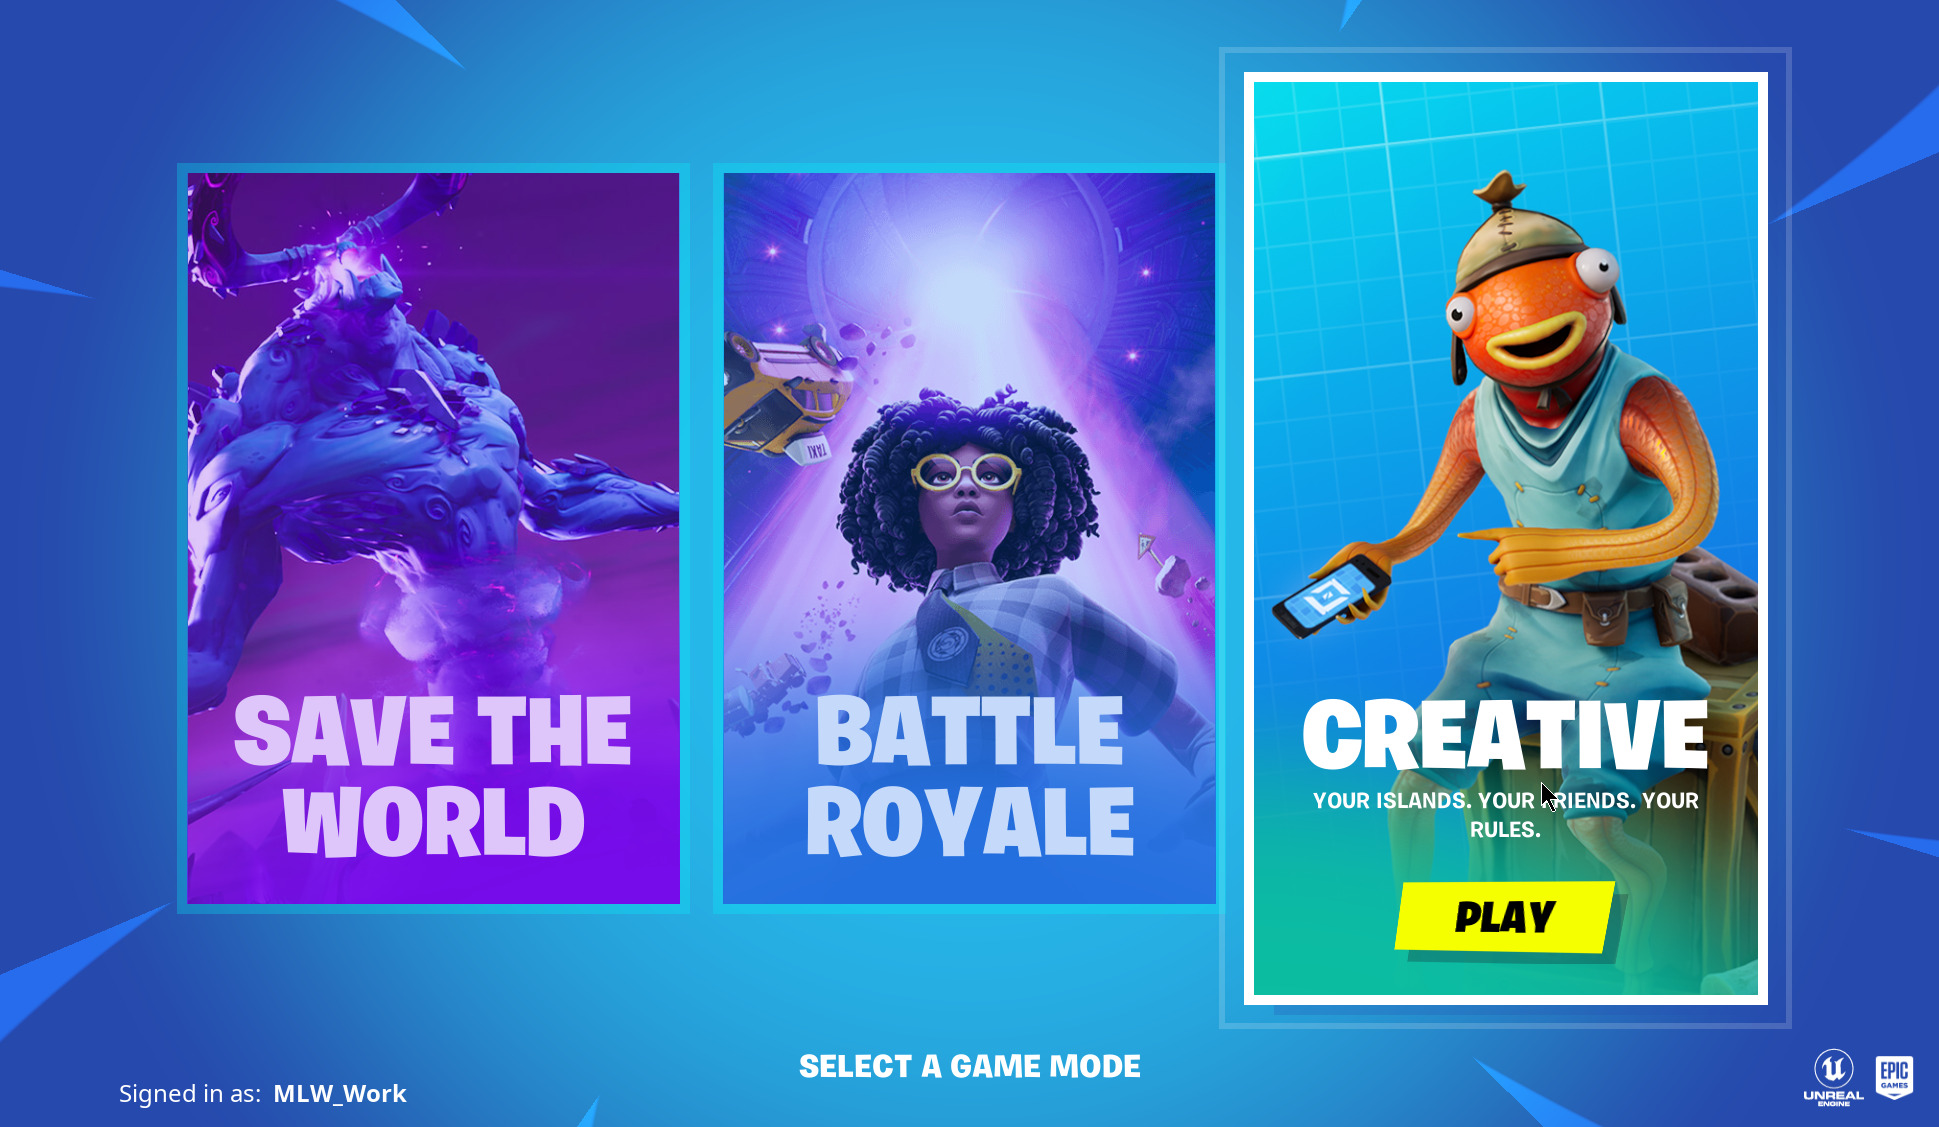 How To Customize Your Avatar In Fortnite Playing Games In Fortnite Creative Fortnite